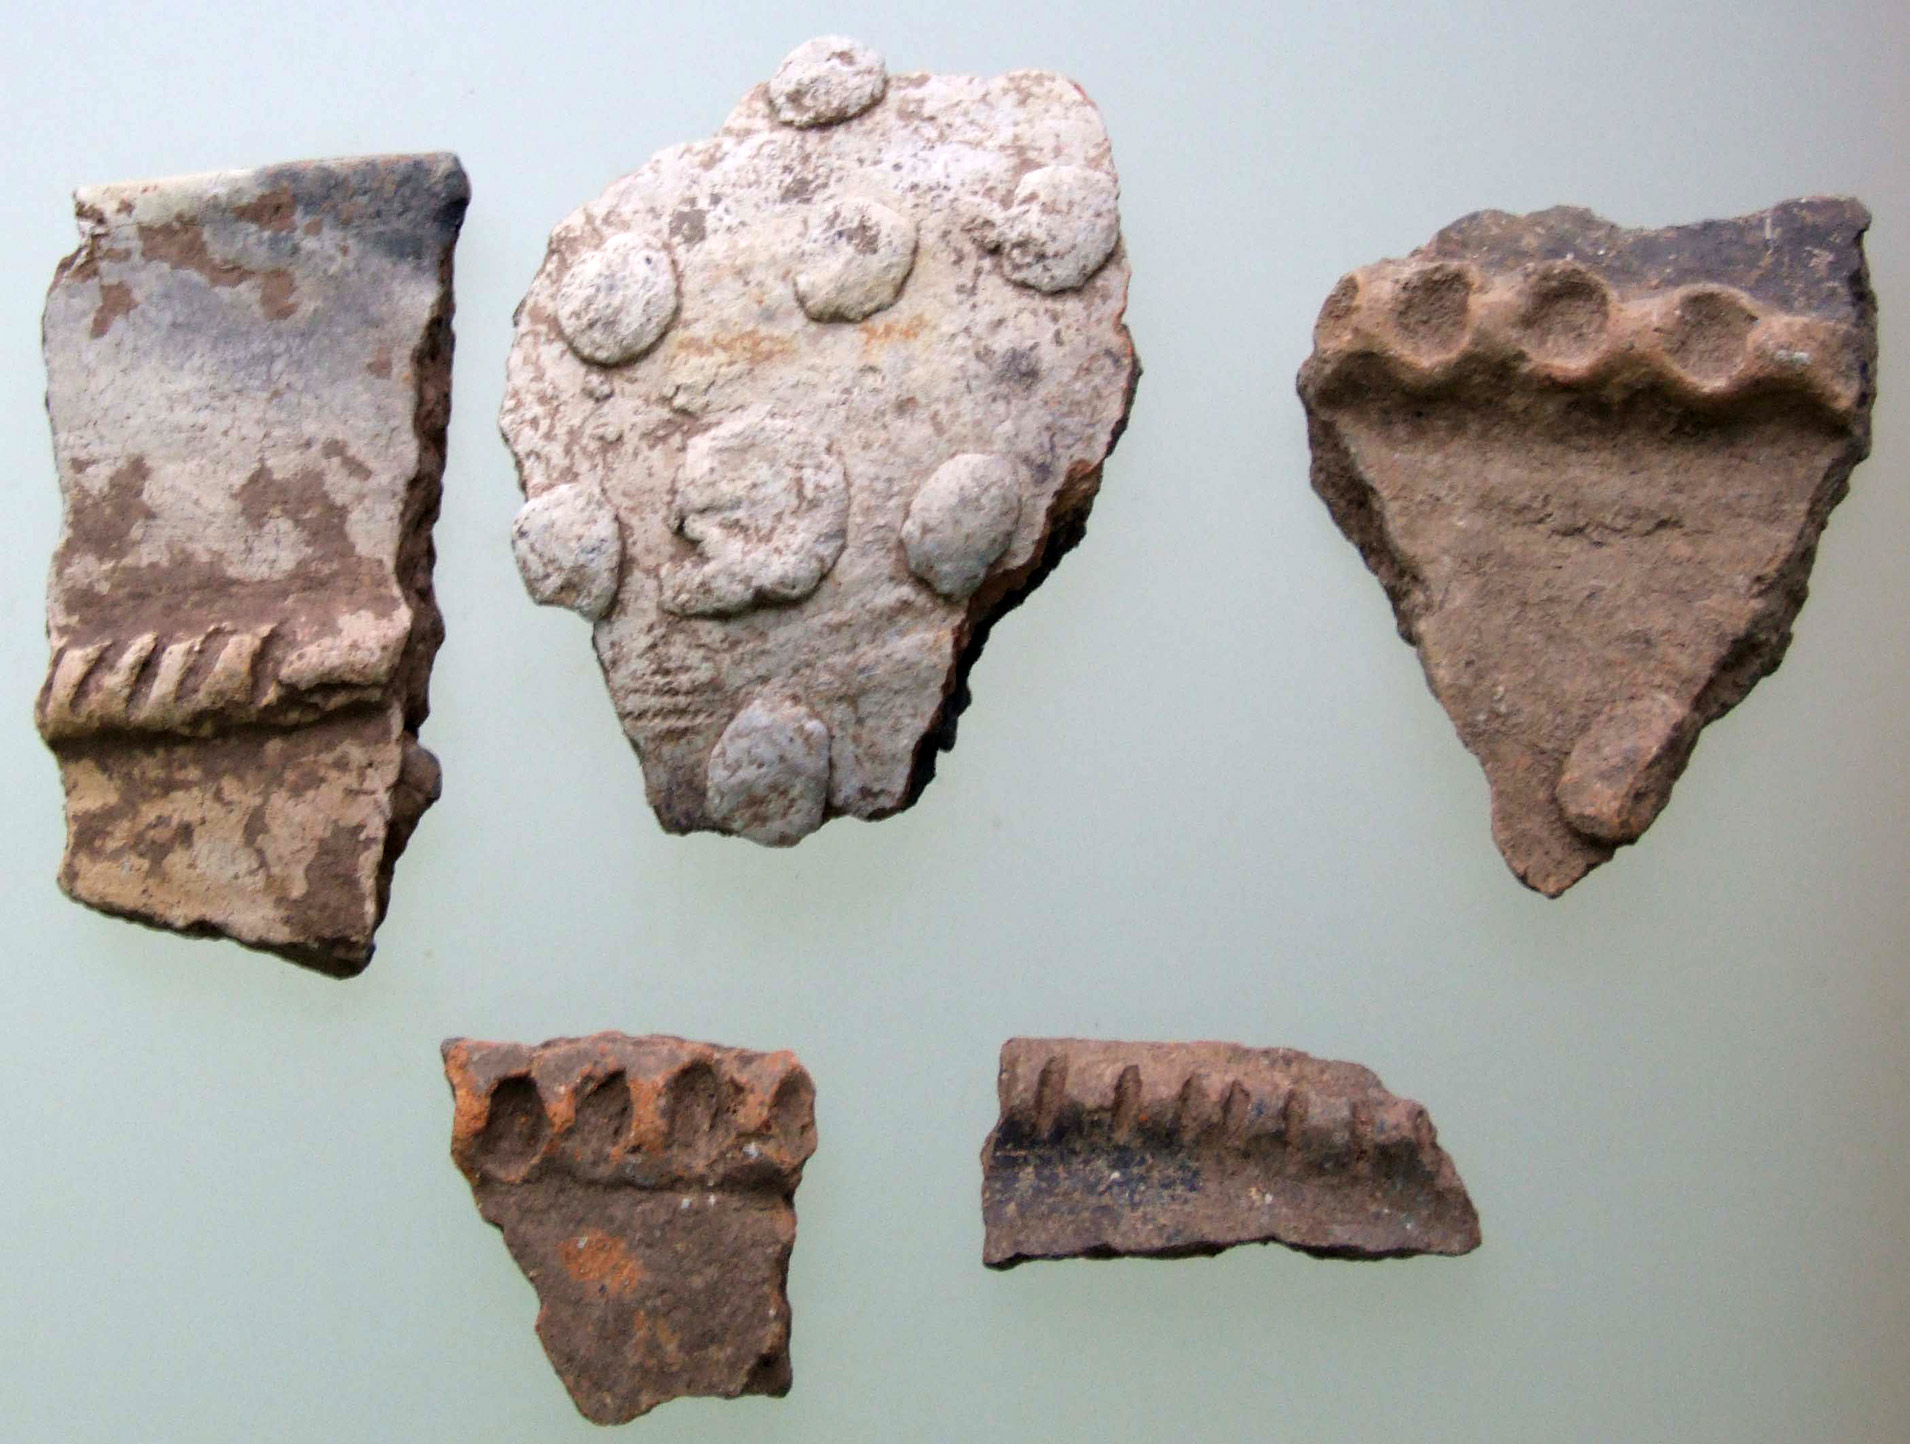 bronze age and early iron age handmade pottery from